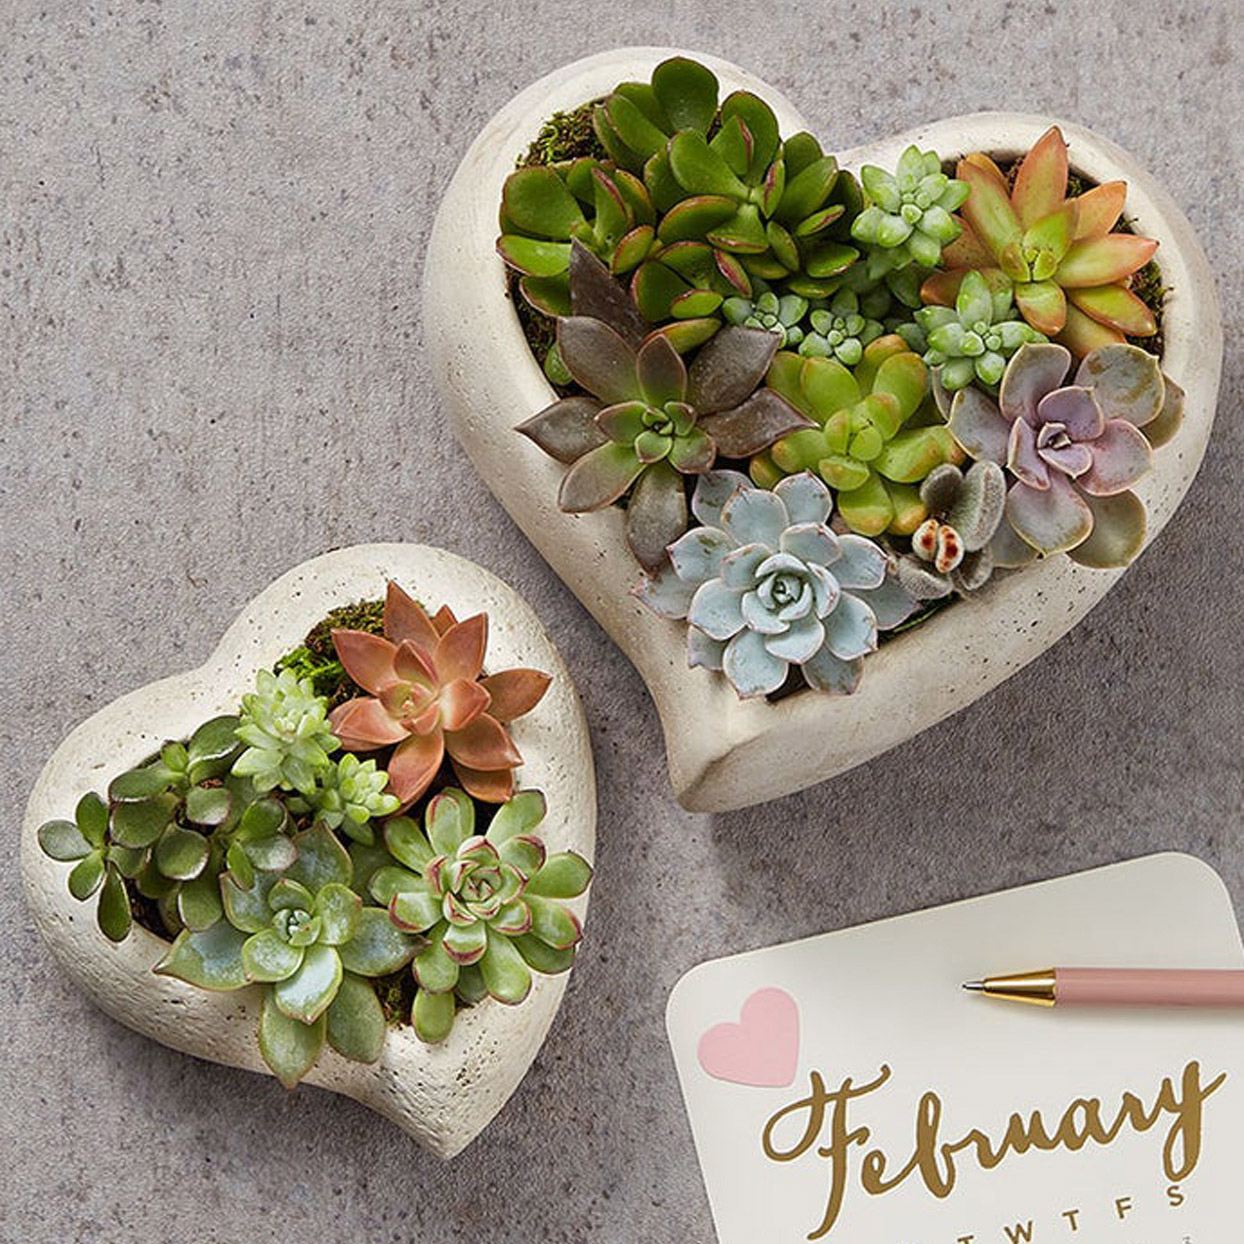 This Heart-Shaped Succulent Garden Is the Cutest Valentine's Gift